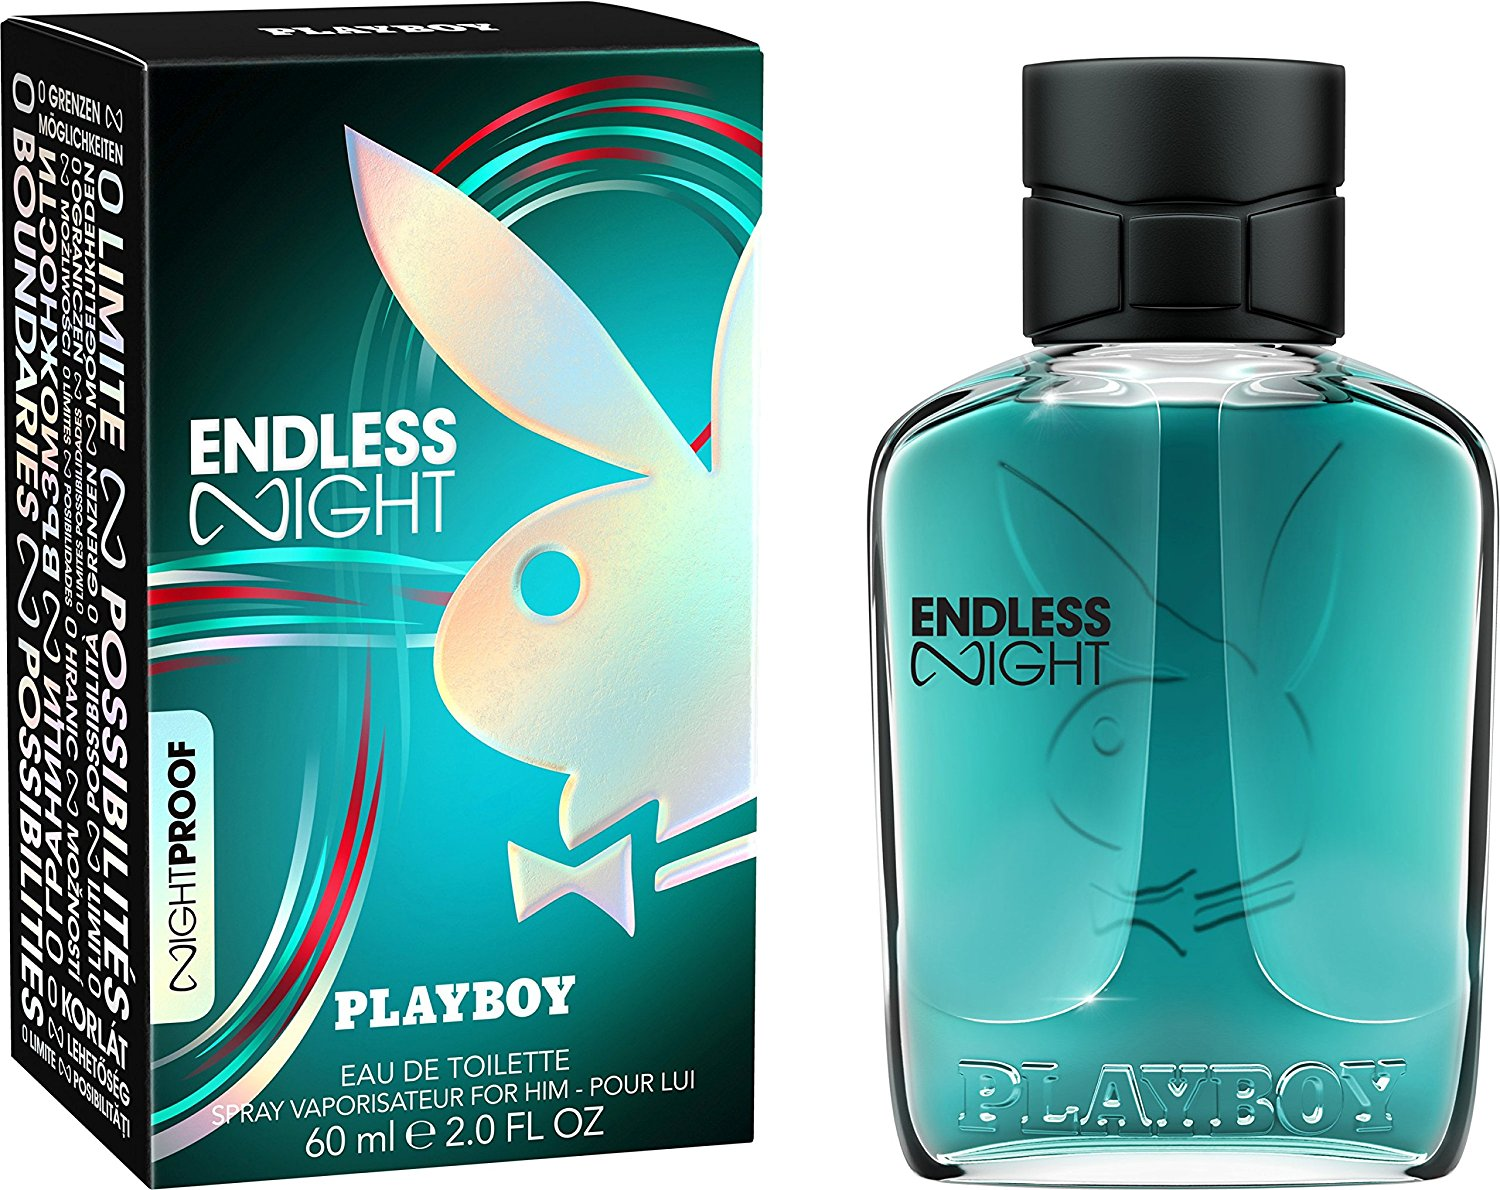 Playboy Endless Night amazon